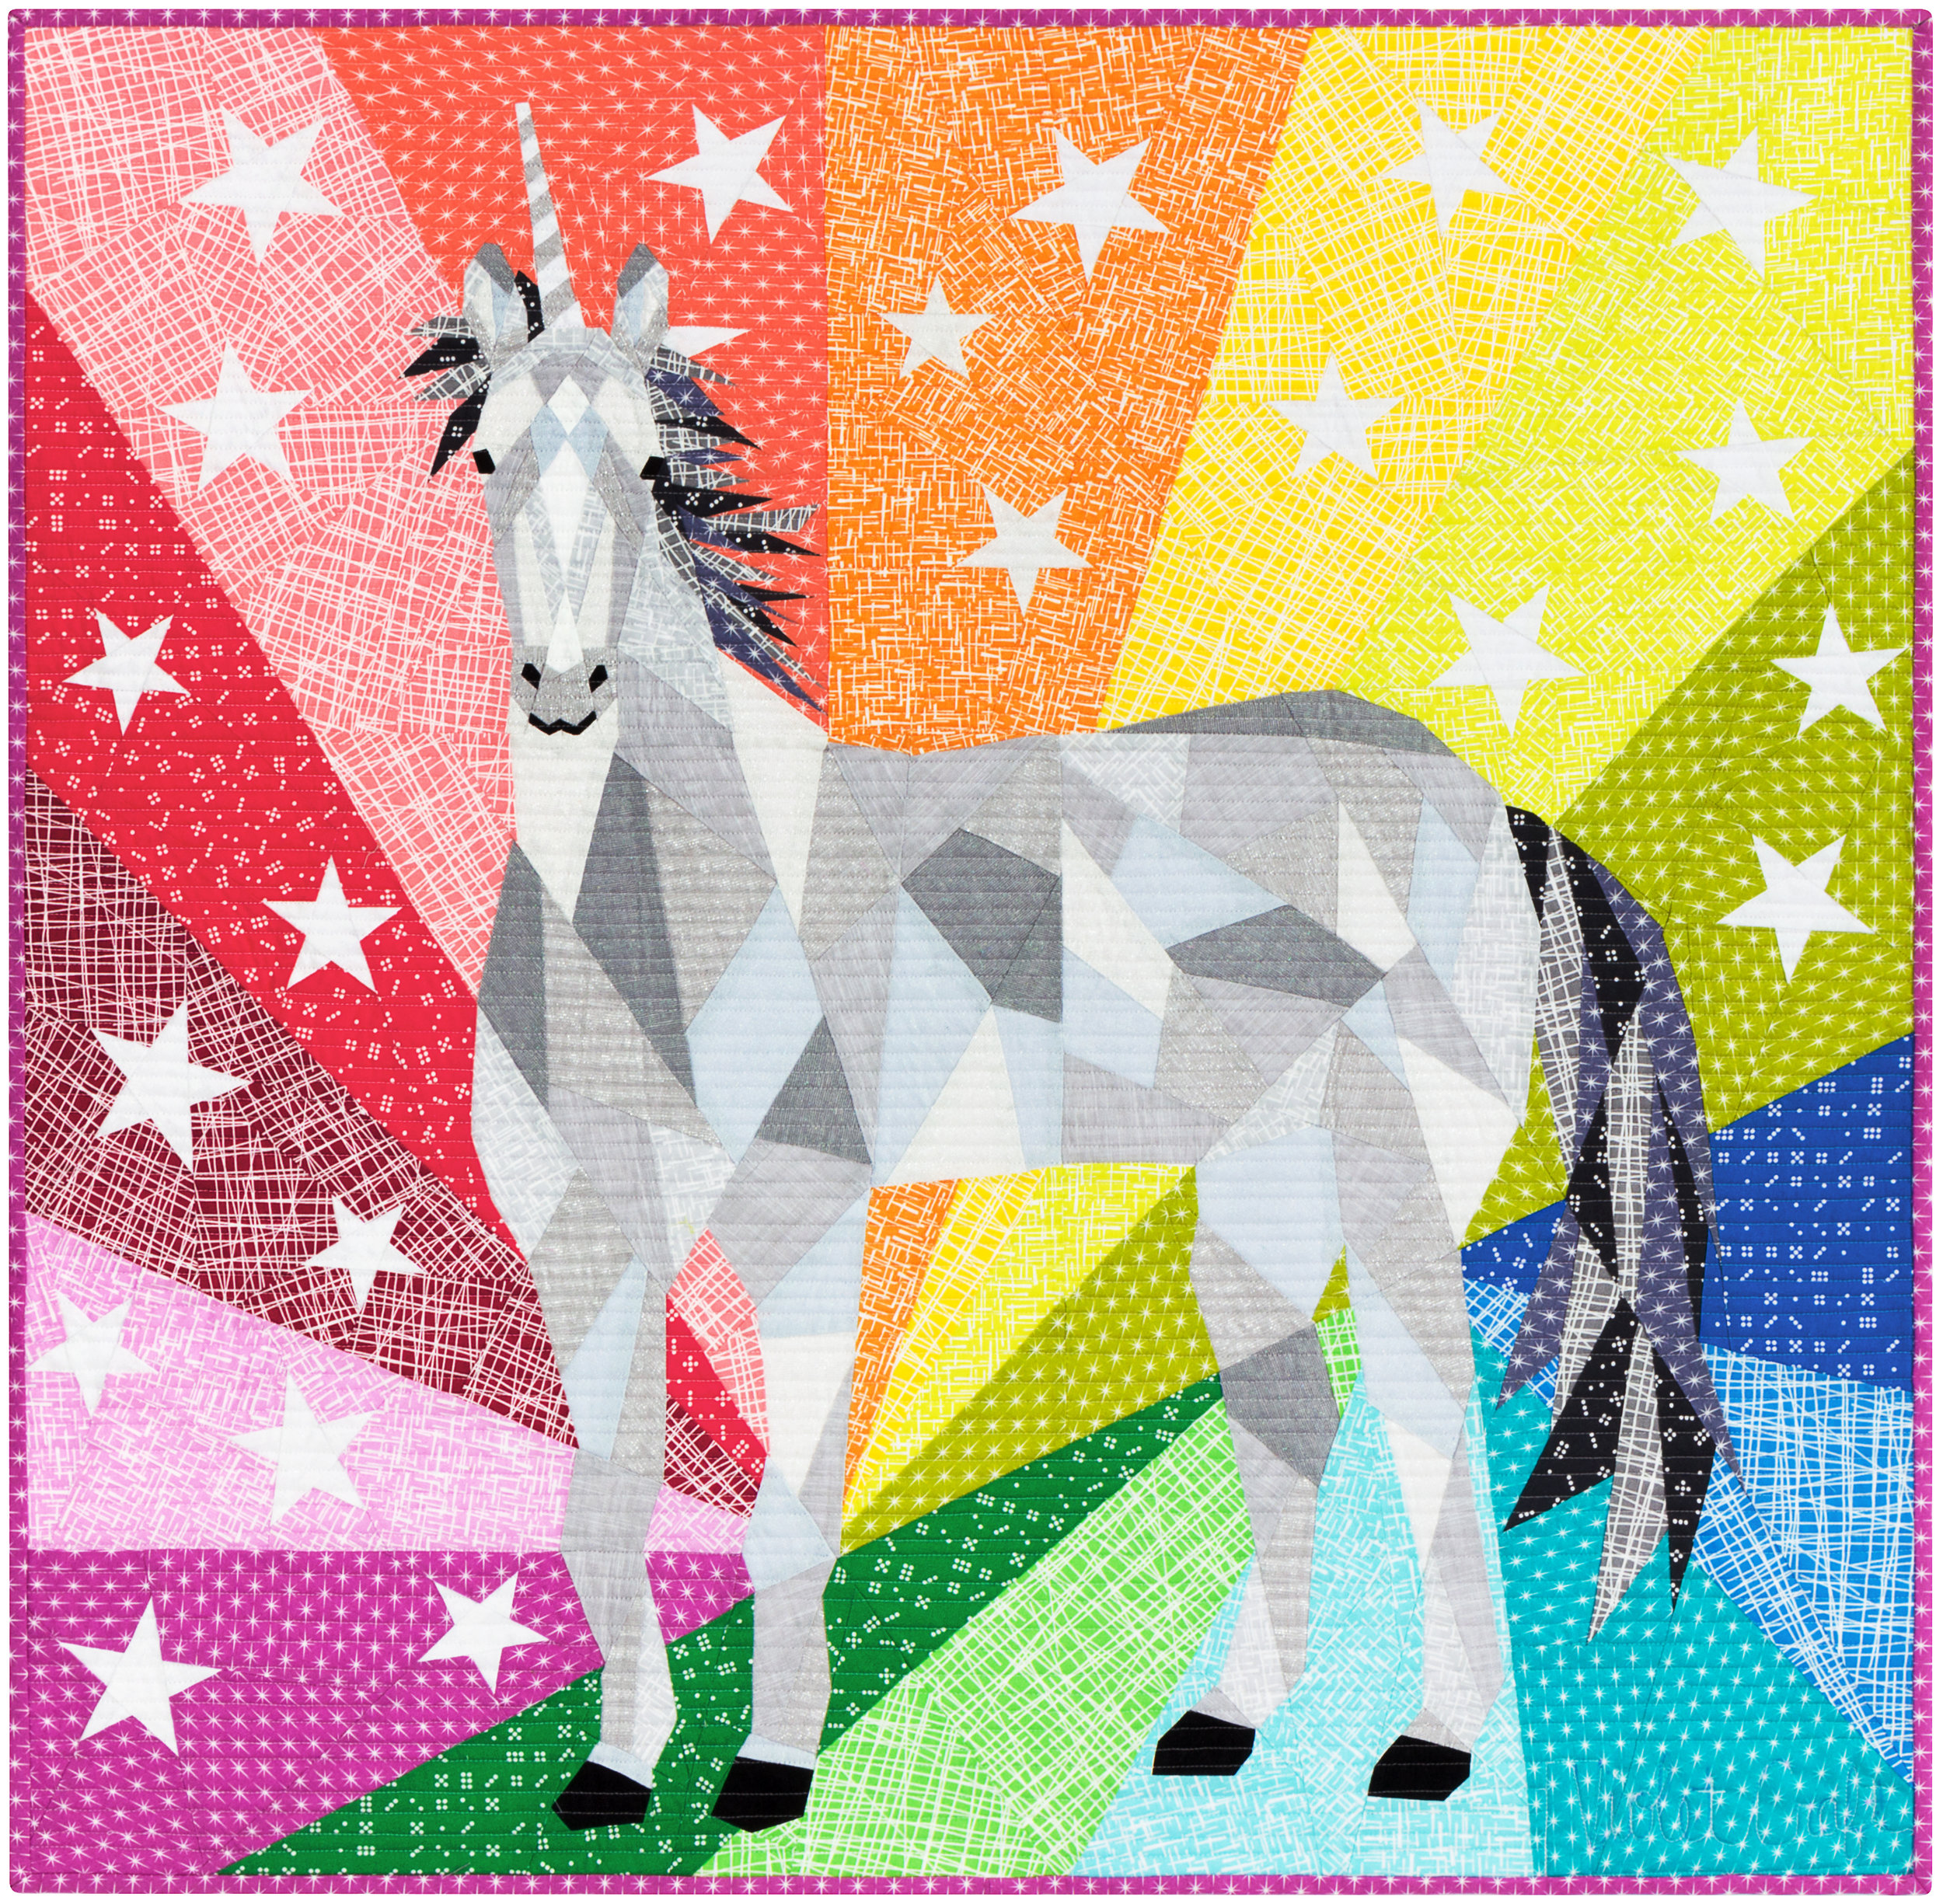 VC035_TheUnicornAbstractionsQuilt_Violet Craft Modern Classics_photobyRK.jpg